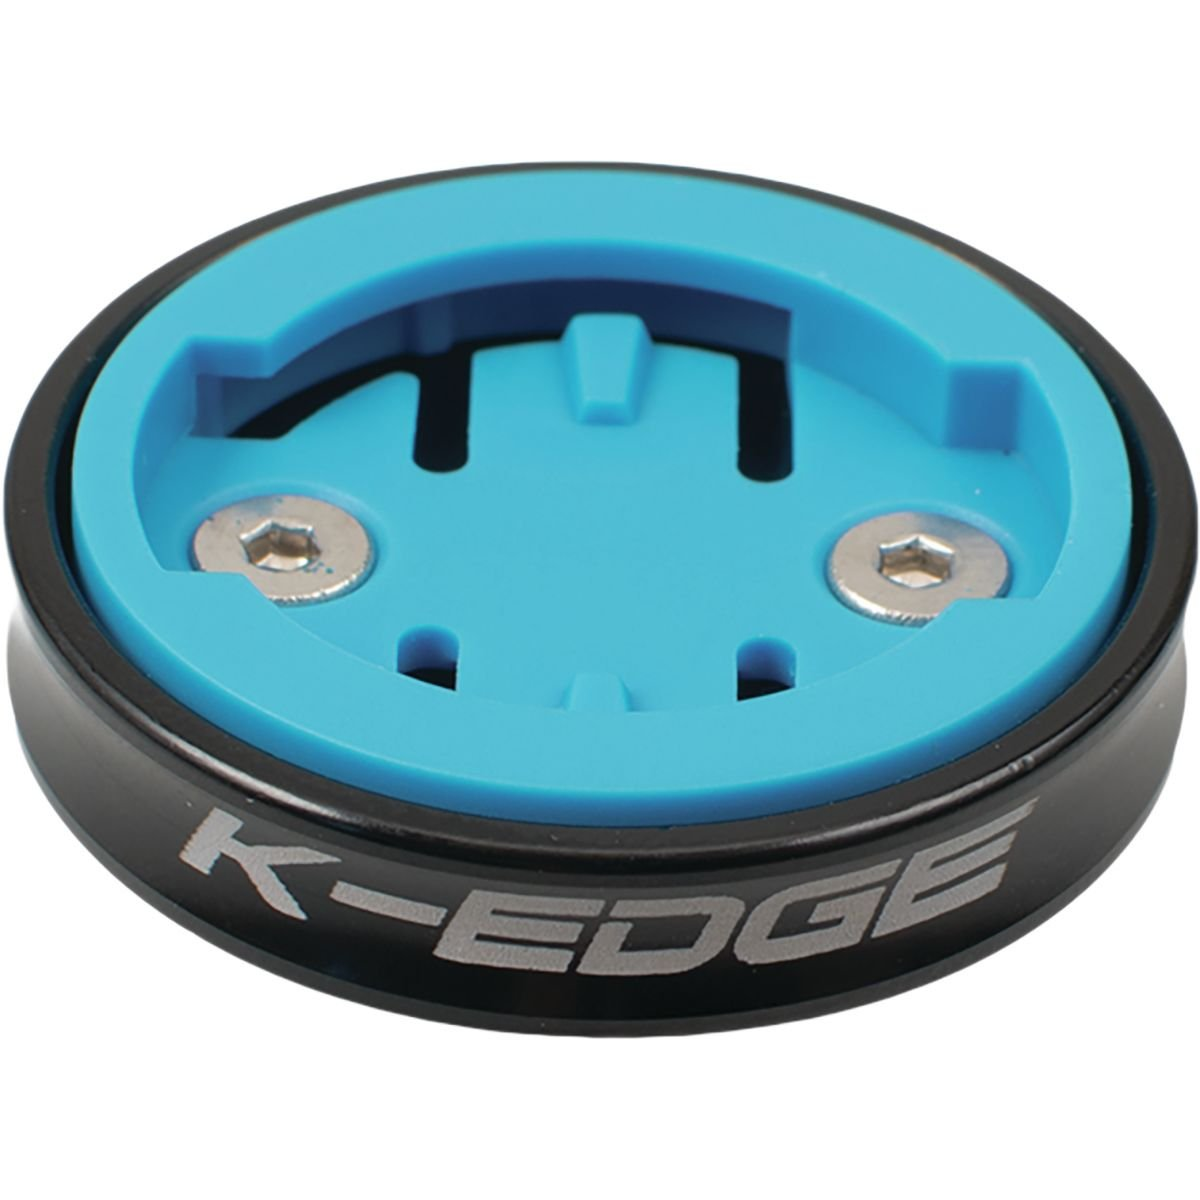 K-EDGE Wahoo Gravity Stem Cap Mount for Wahoo Bolt and Wahoo ELEMNT computers